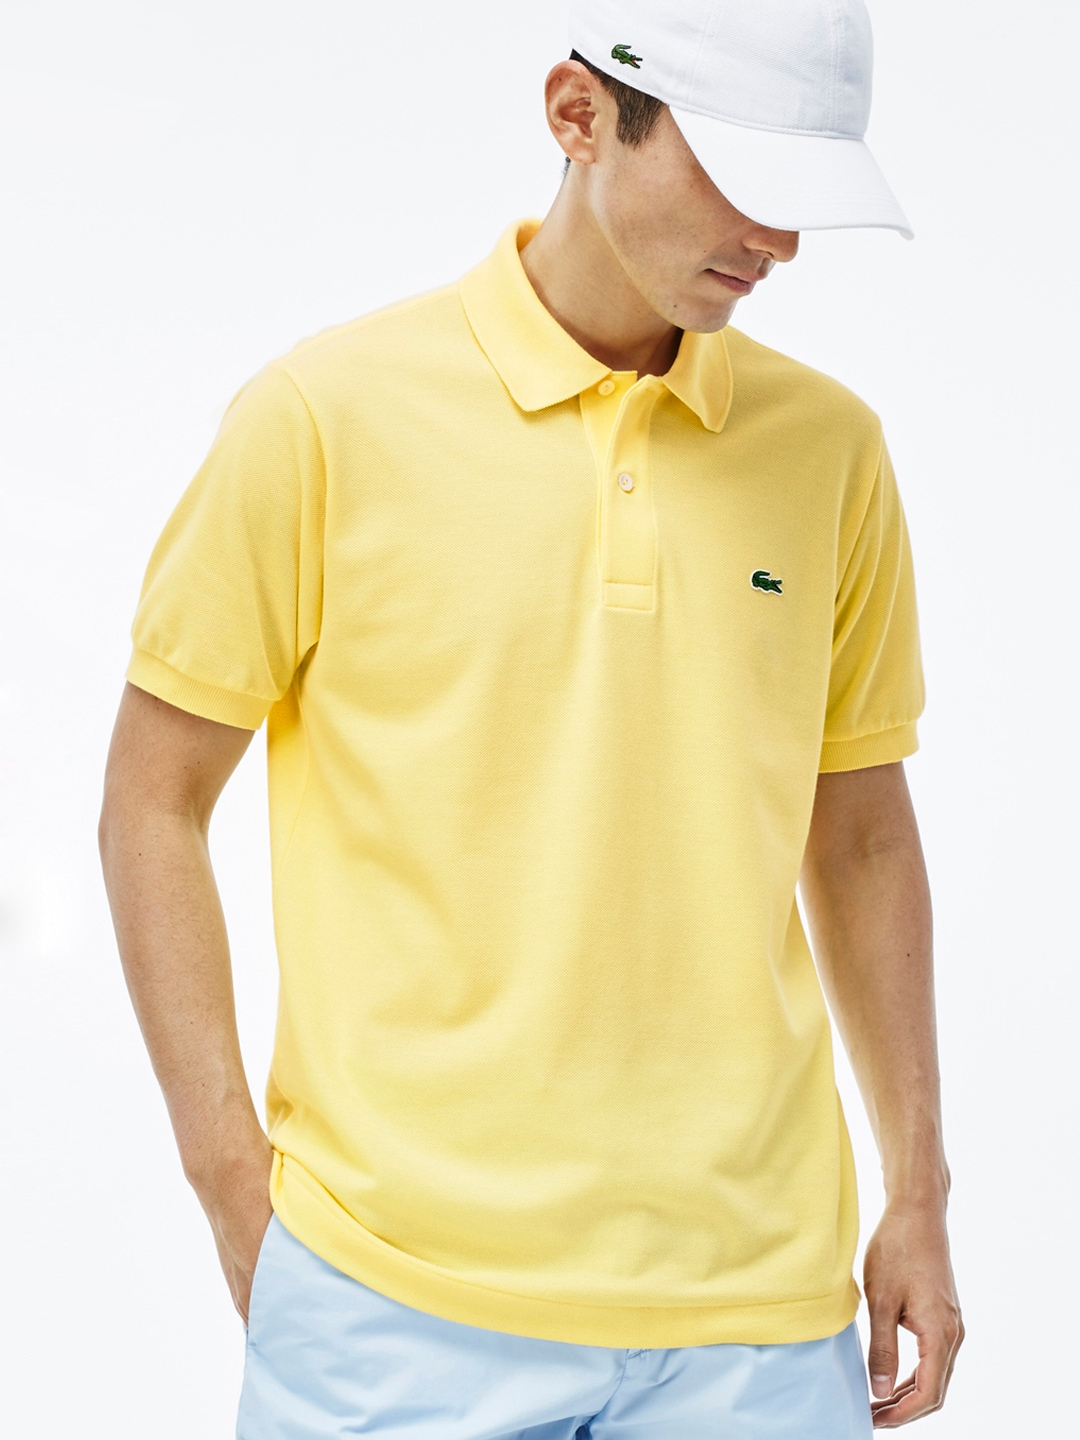 d15698ac2a3 Lacoste - Buy Clothing   Accessories from Lacoste Store